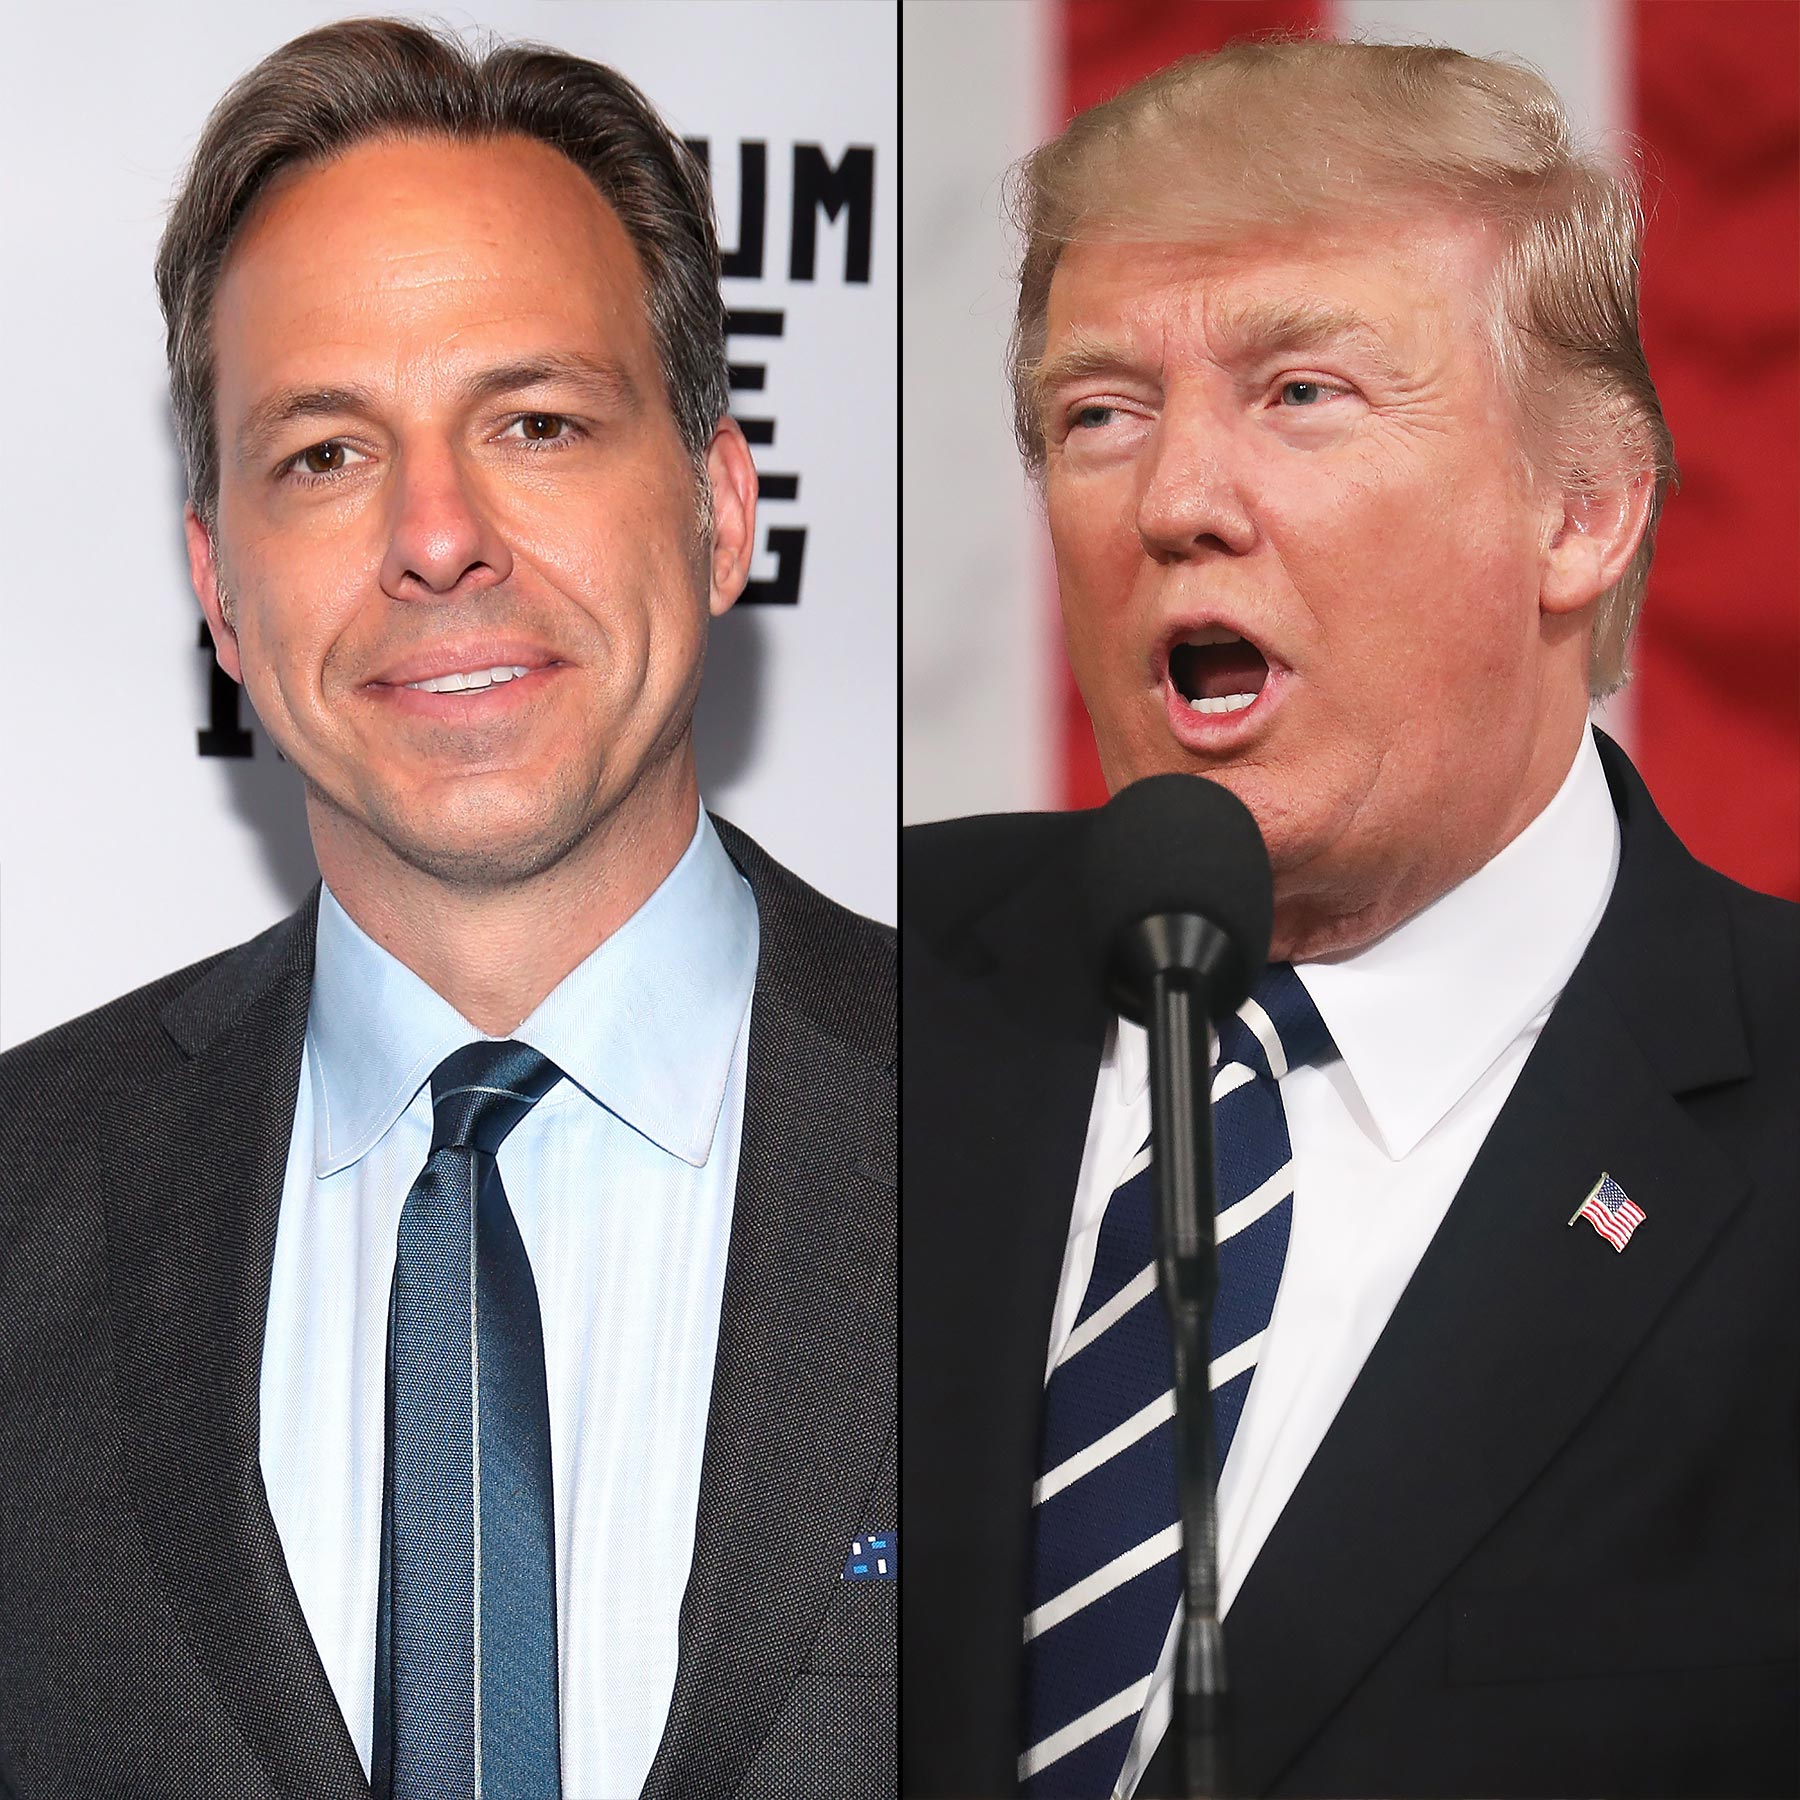 JAKE-TAPPER-DONALD-TRUMP